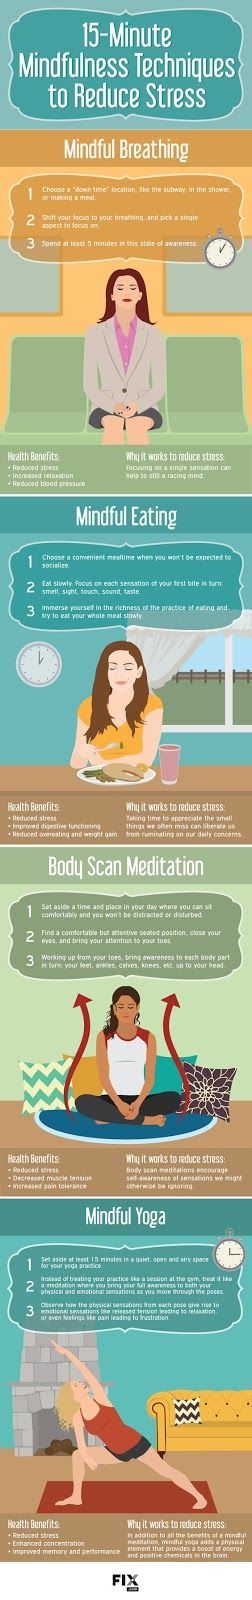 Mindful Breath, Eating, Yoga and Body Scan Meditation - 15 Minute Mindfulness Techniques for Stress Reduction [Infographic]